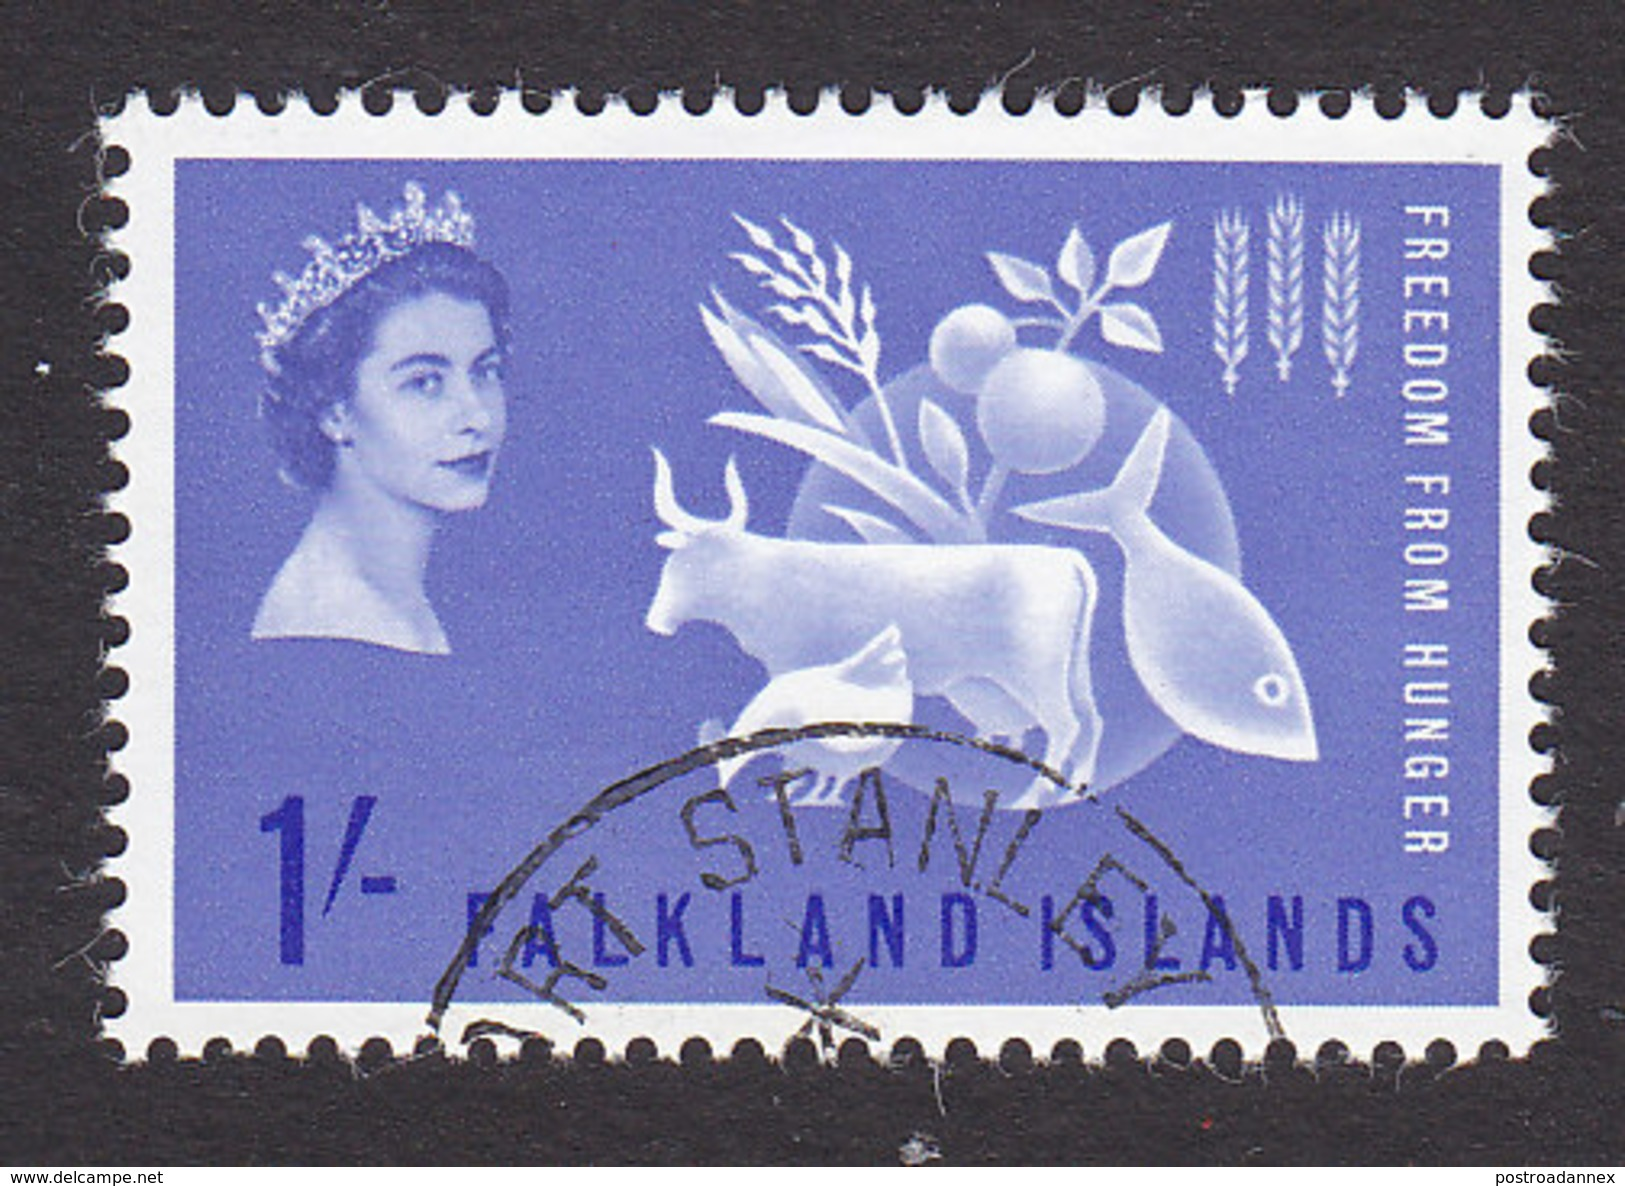 Falkland Islands, Scott #146, Used, Freedom From Hunger, Issued 1963 - Falkland Islands